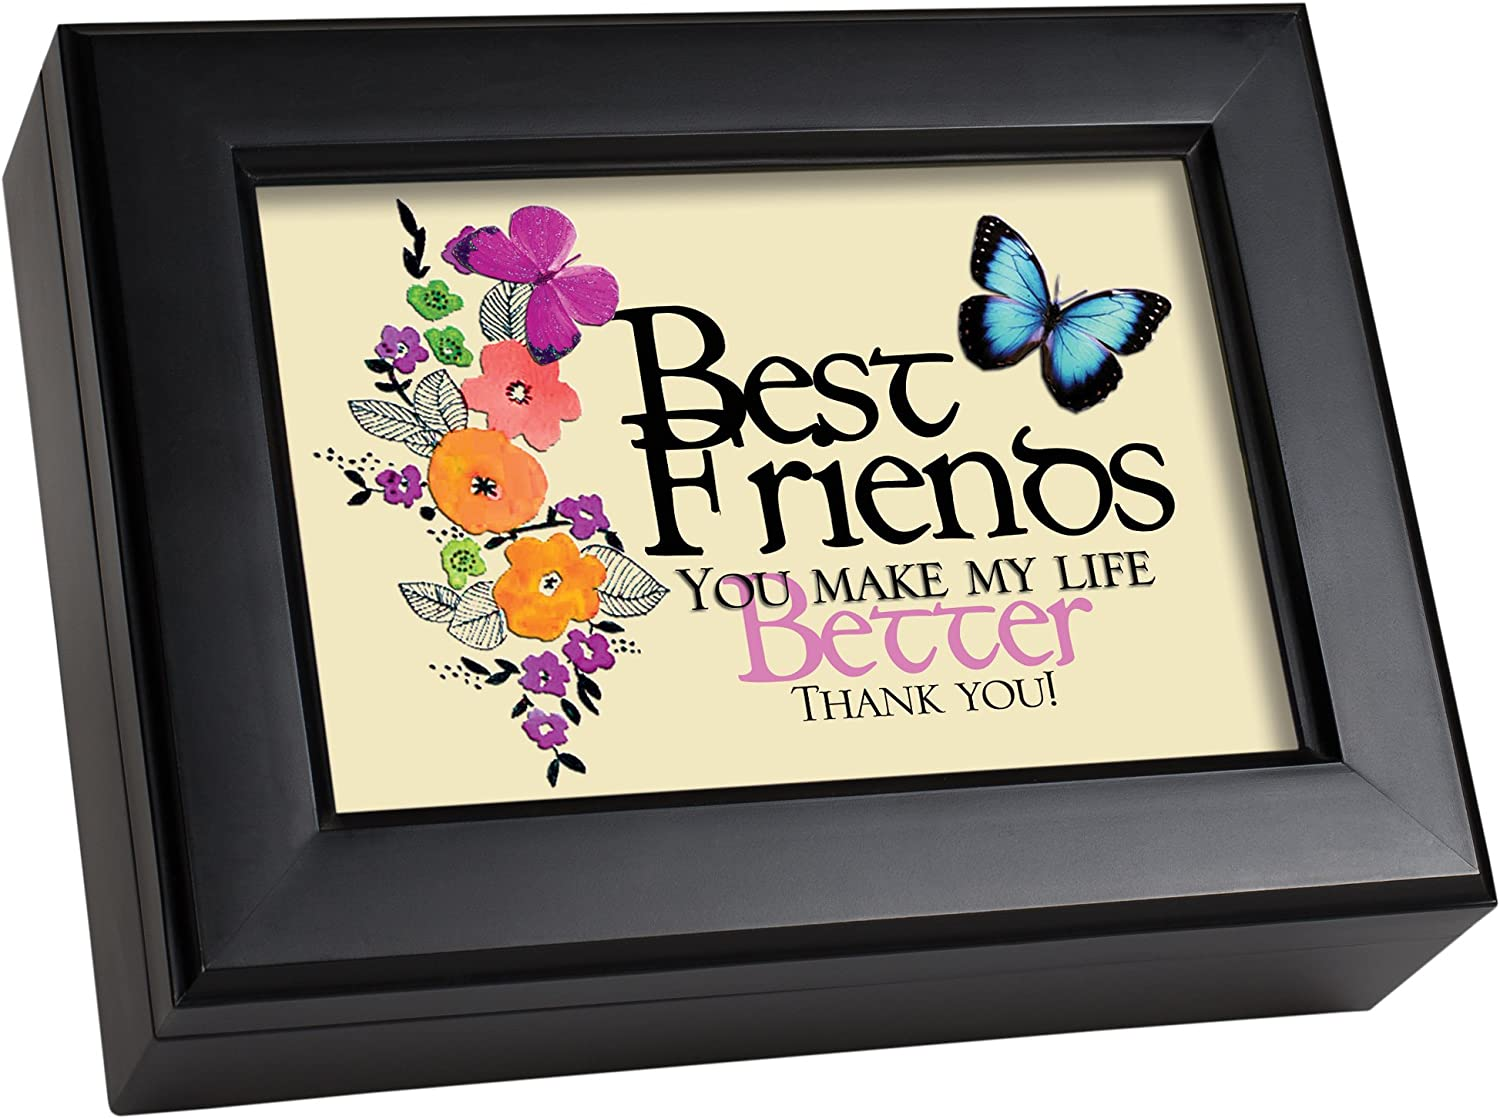 Best Friends negro Cottage Garden tradicional caja de música eso es lo Friends Are para: Amazon.es: Hogar